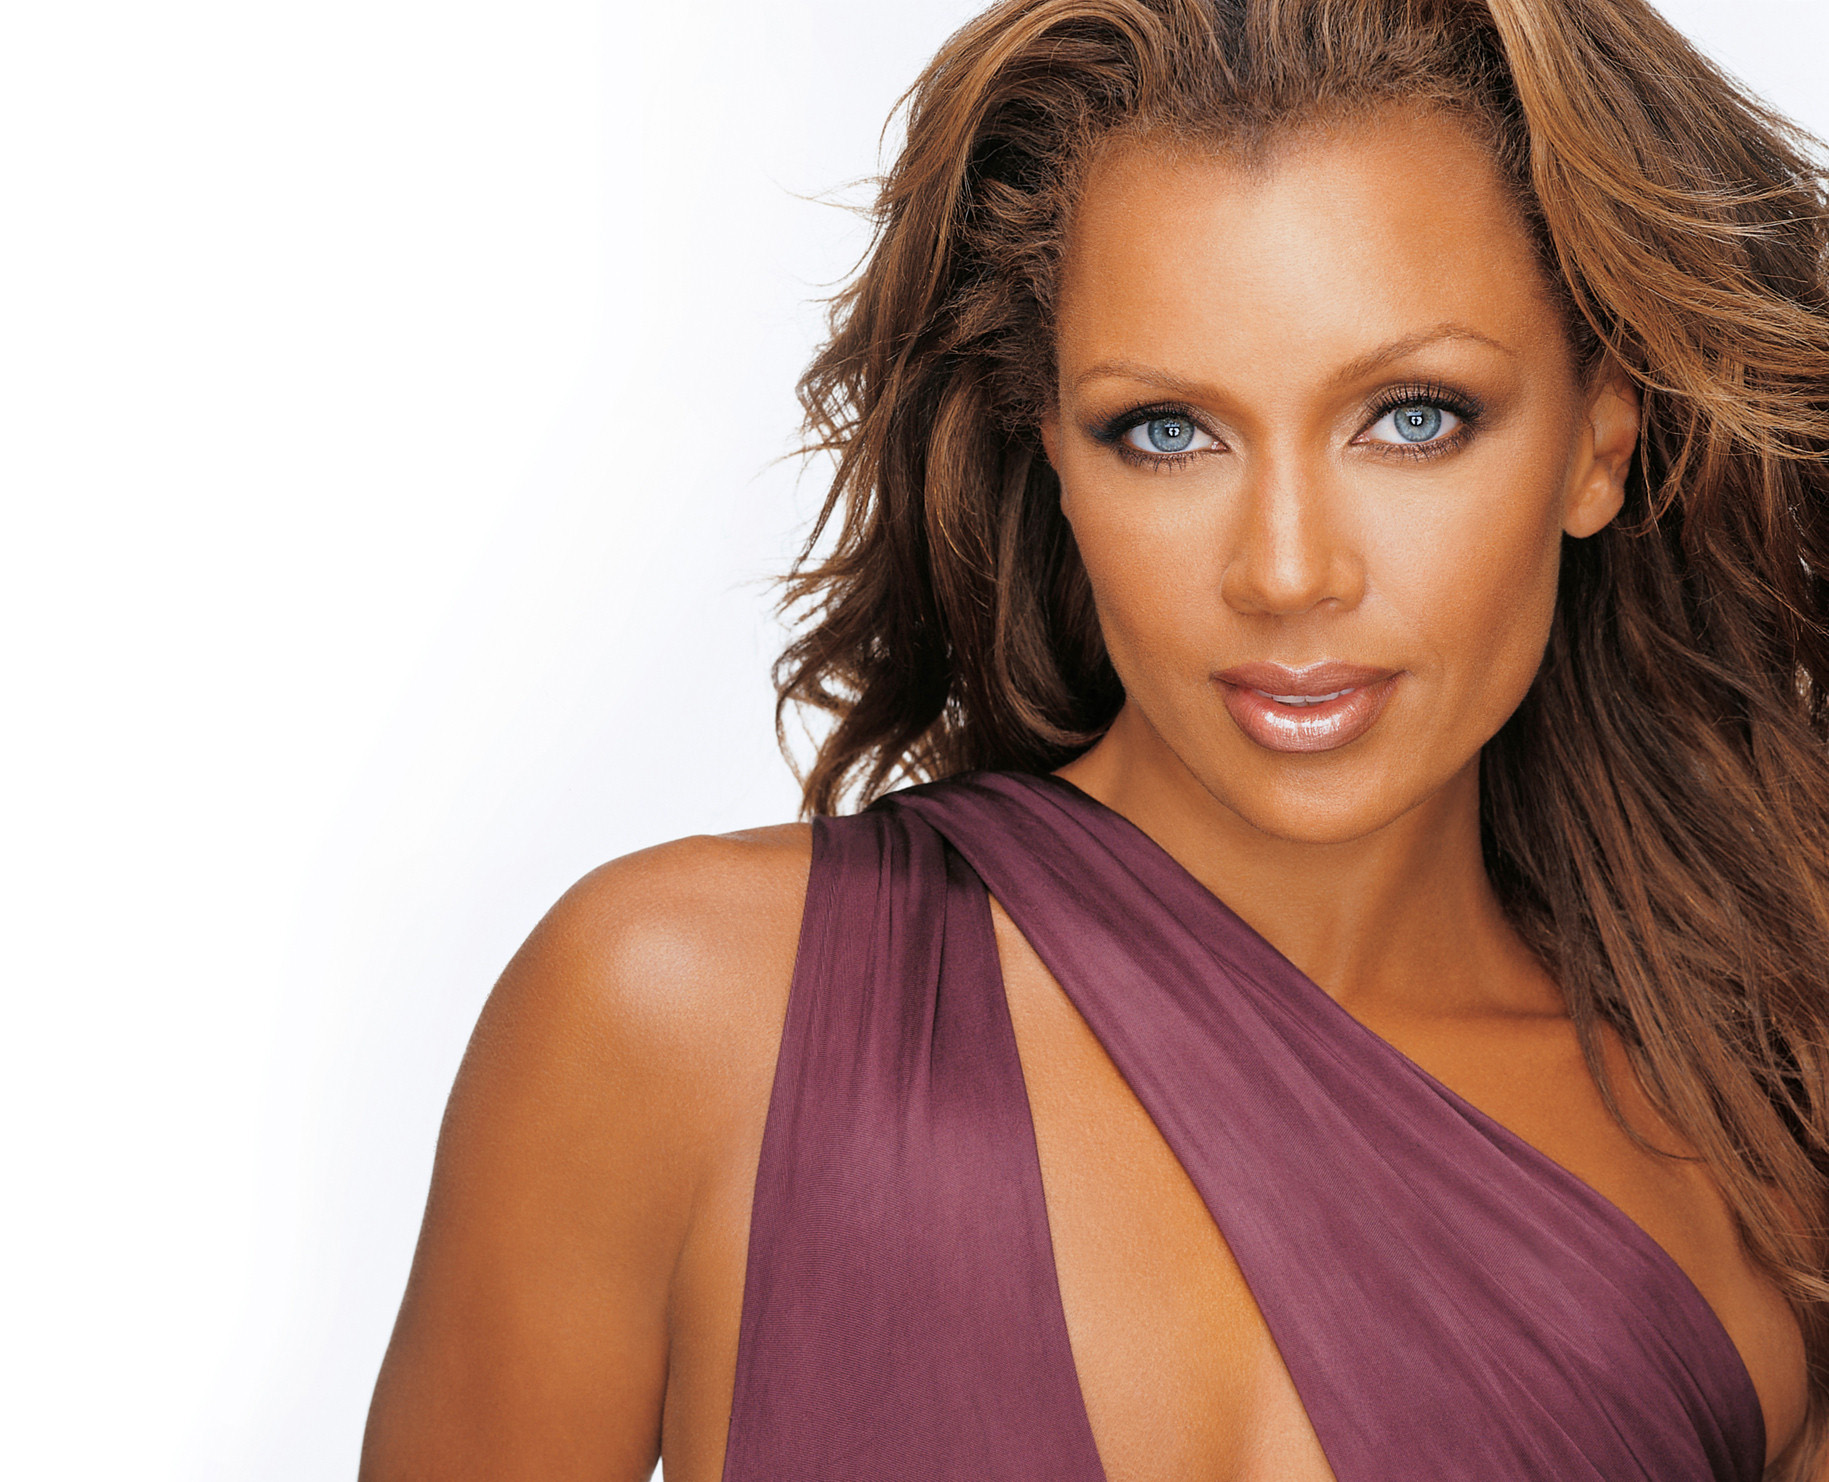 Multi-platinum recording artist and star of television, film and the Broadway stage Vanessa Williams co-hosts the special 40th anniversary presentation of PBS' A CAPITOL FOURTH with John Stamos on Saturday, July 4, 2020. Photo Credit: Rod Spicer